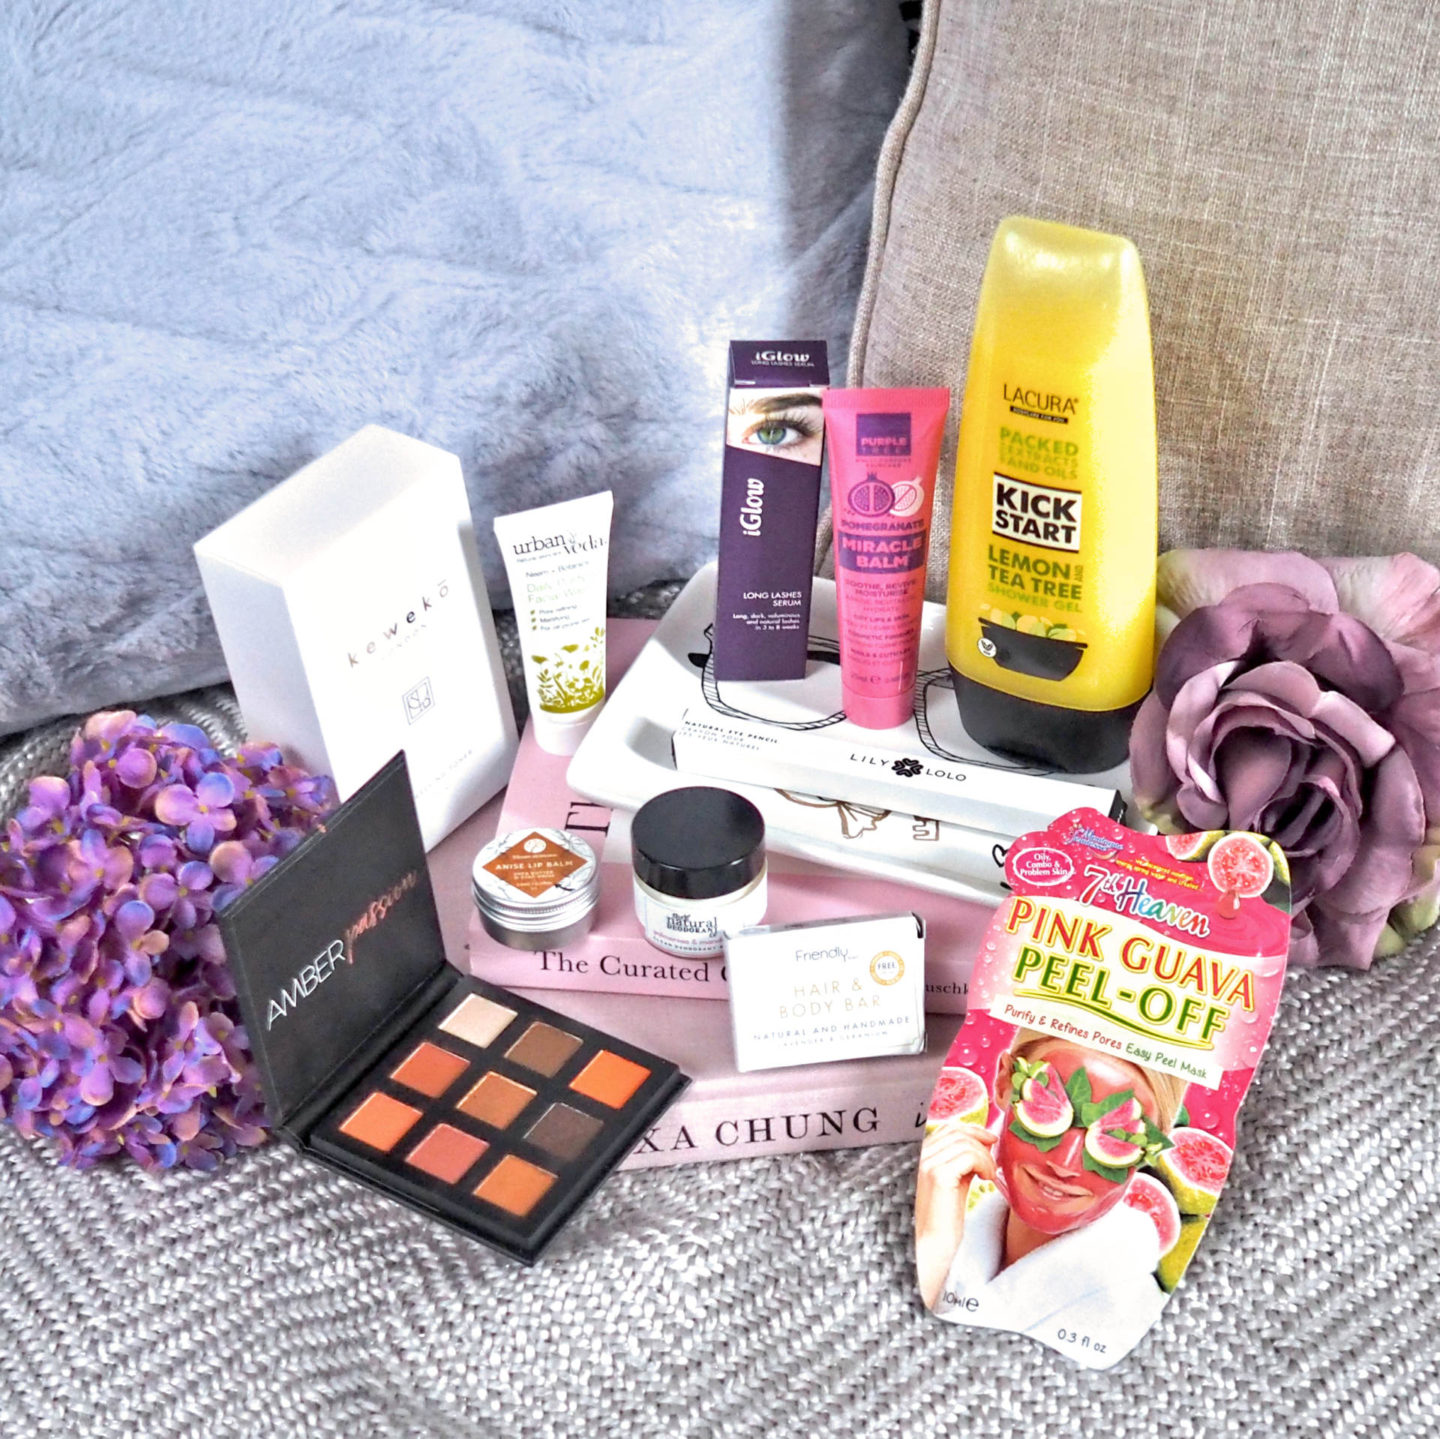 1125461f5a0 The Pip Box is one of my favourite subscription boxes ever, the products  you get in there are honestly amazing! Their new box which is in  collaboration with ...